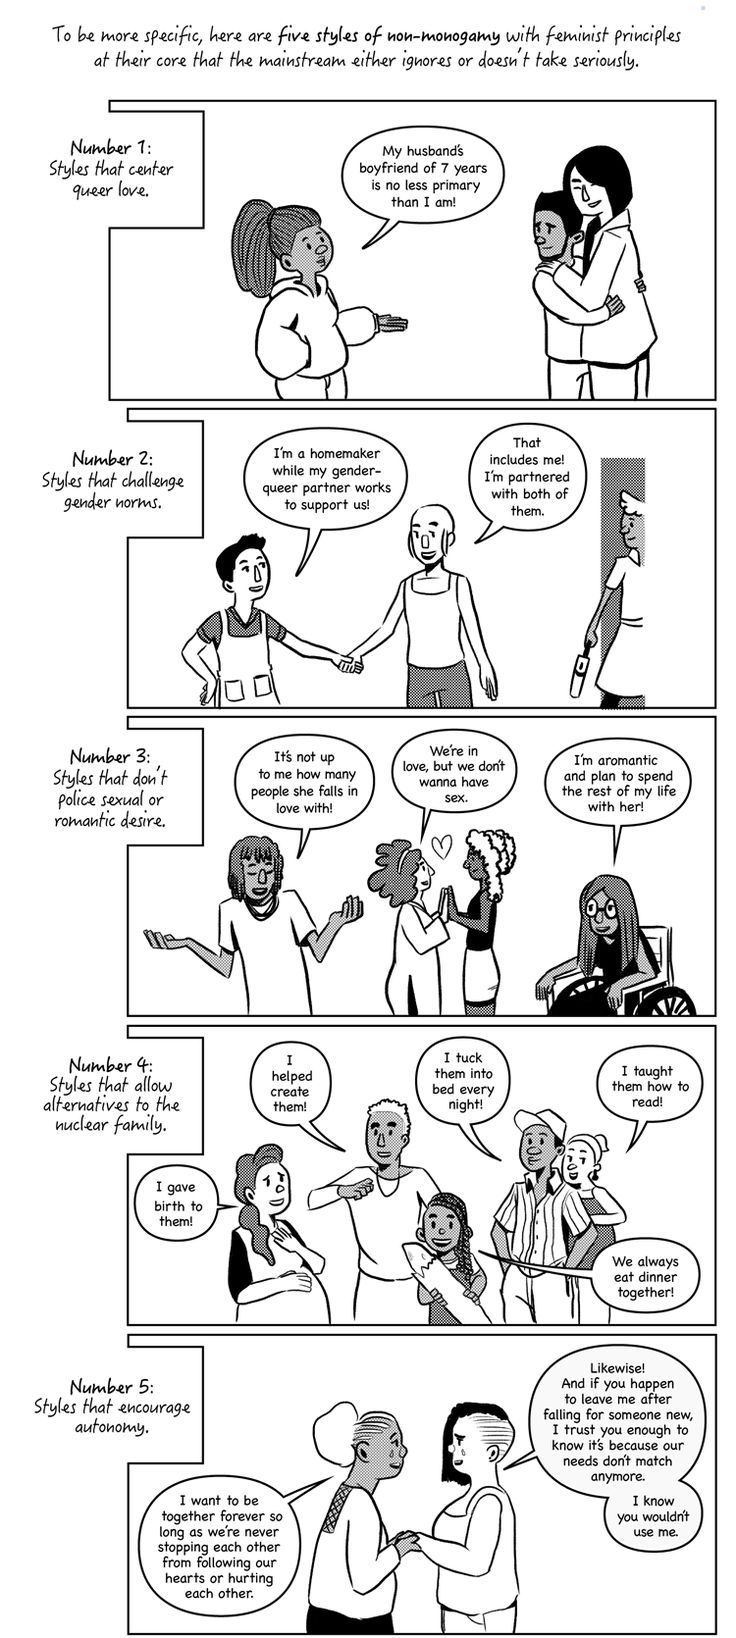 5 Ways People Do Non-Monogamy That You Need to Know About (Follow the link for the whole strip, from Everyday Feminism)